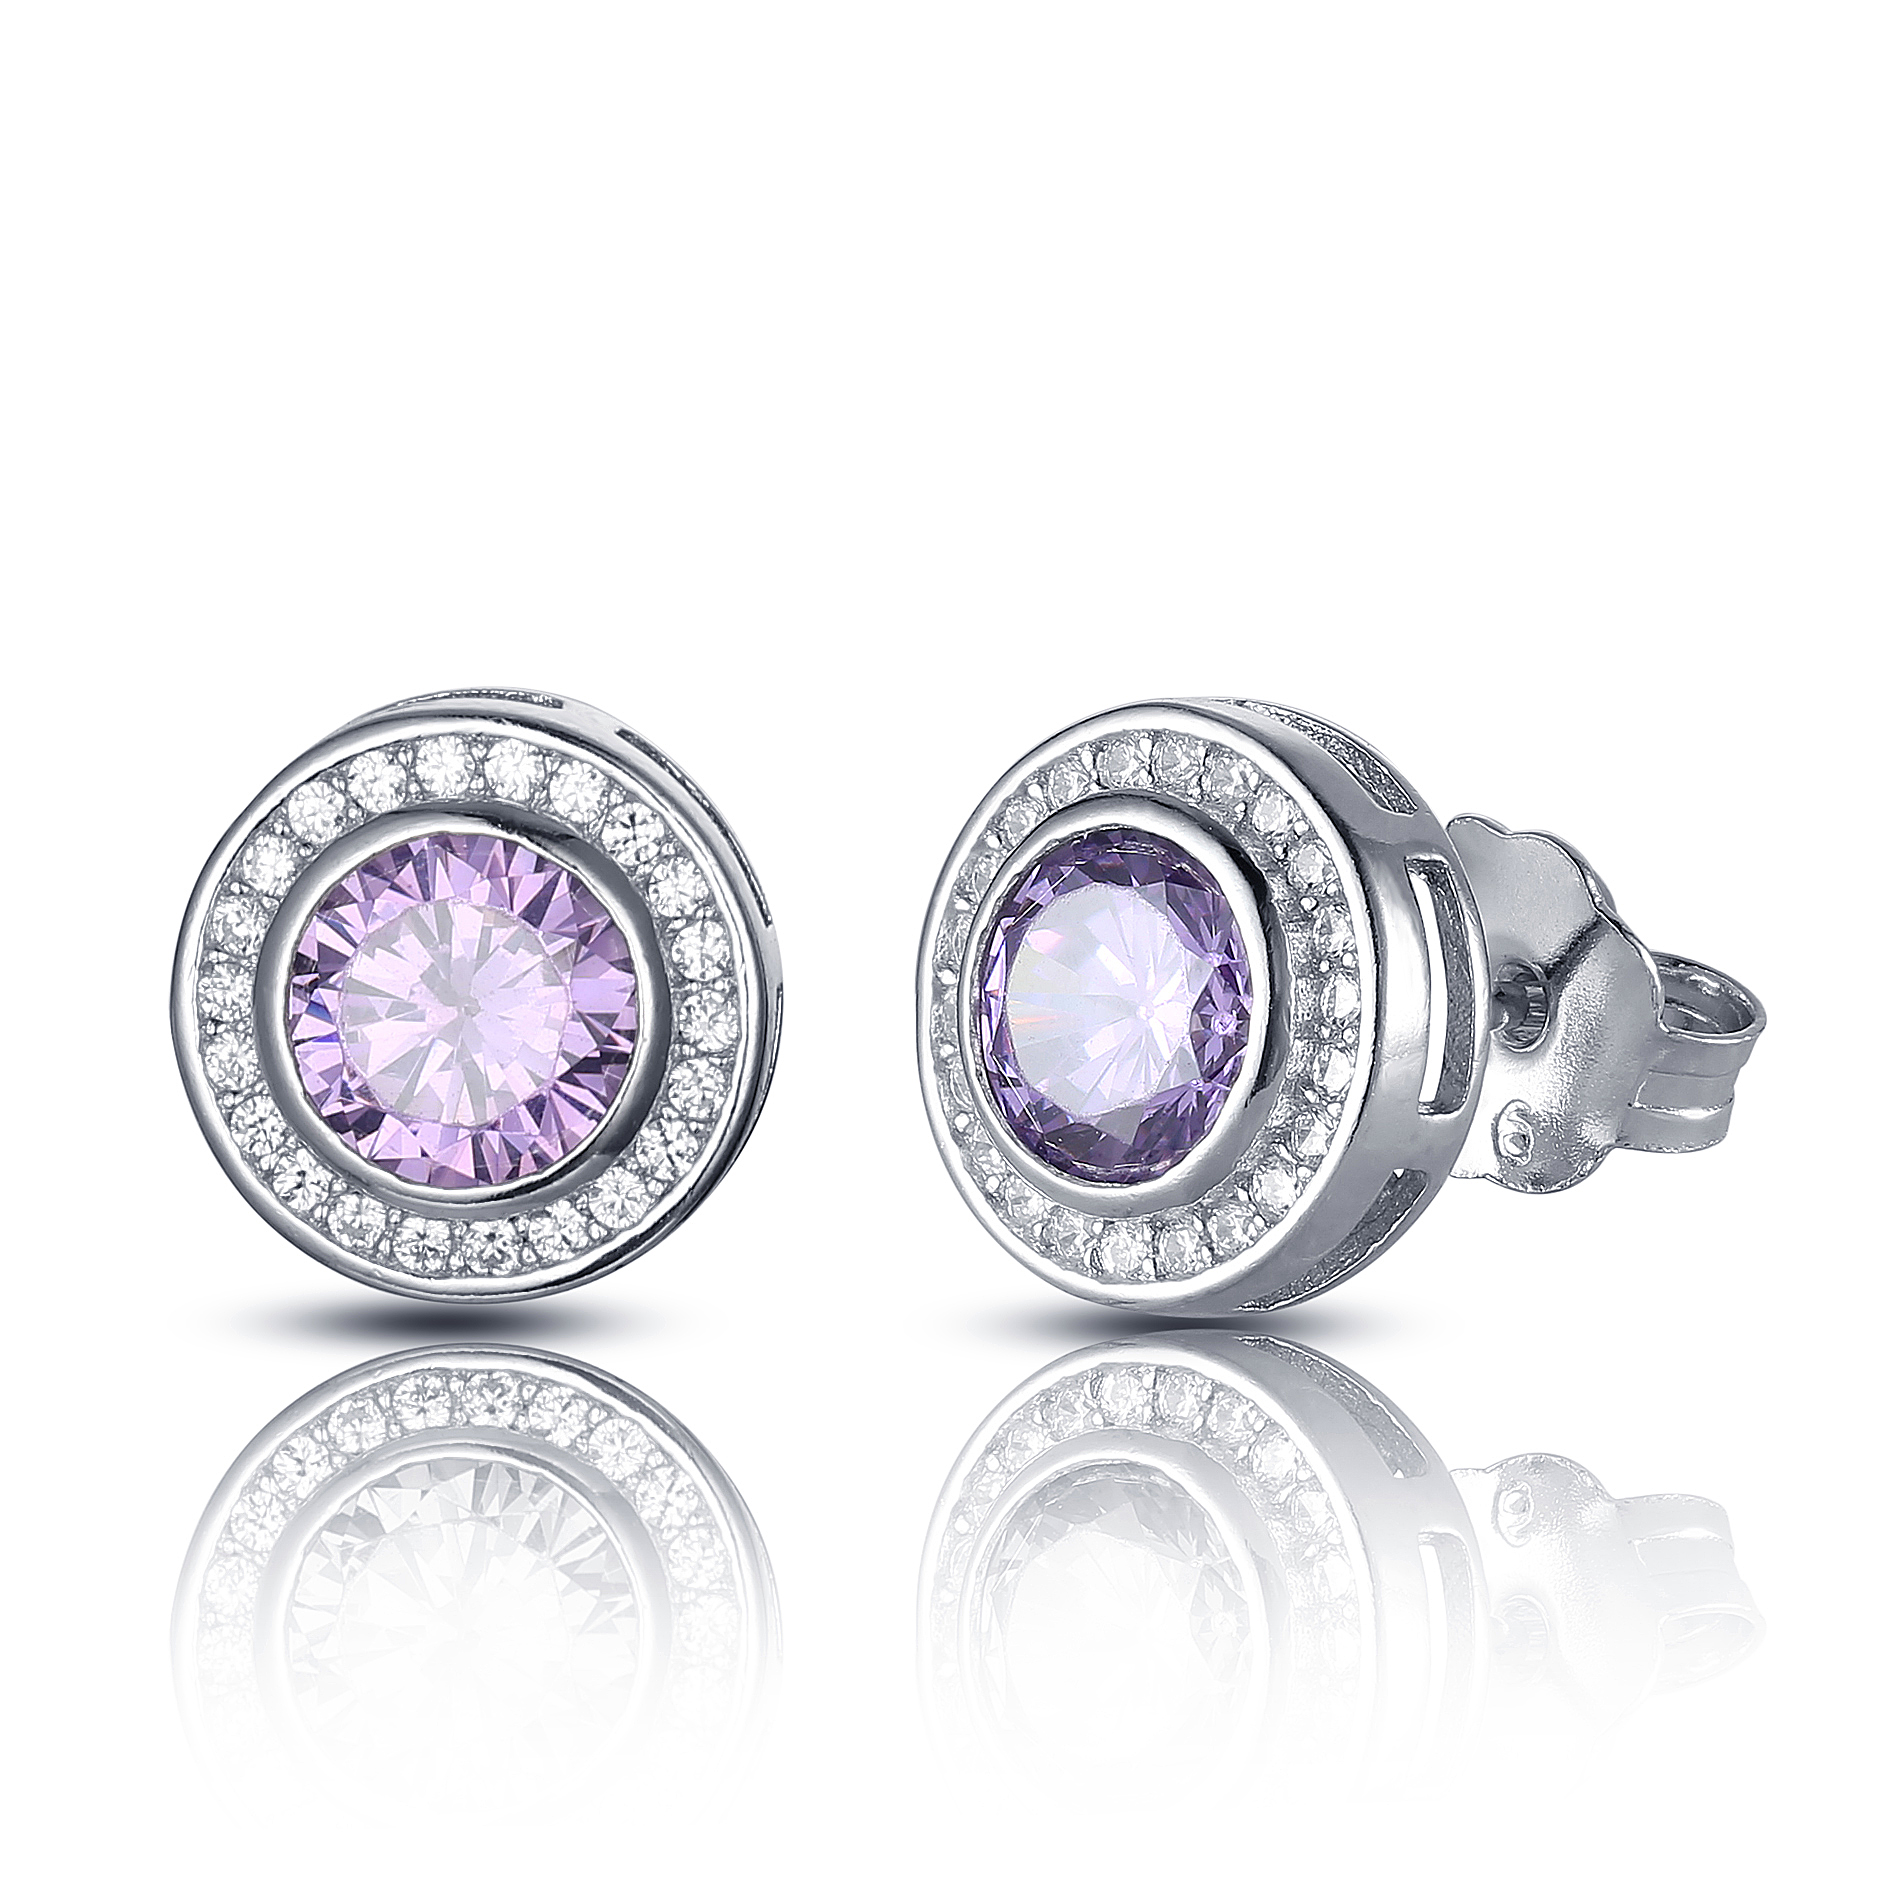 Colorful main stone engagement earring with pin in middle